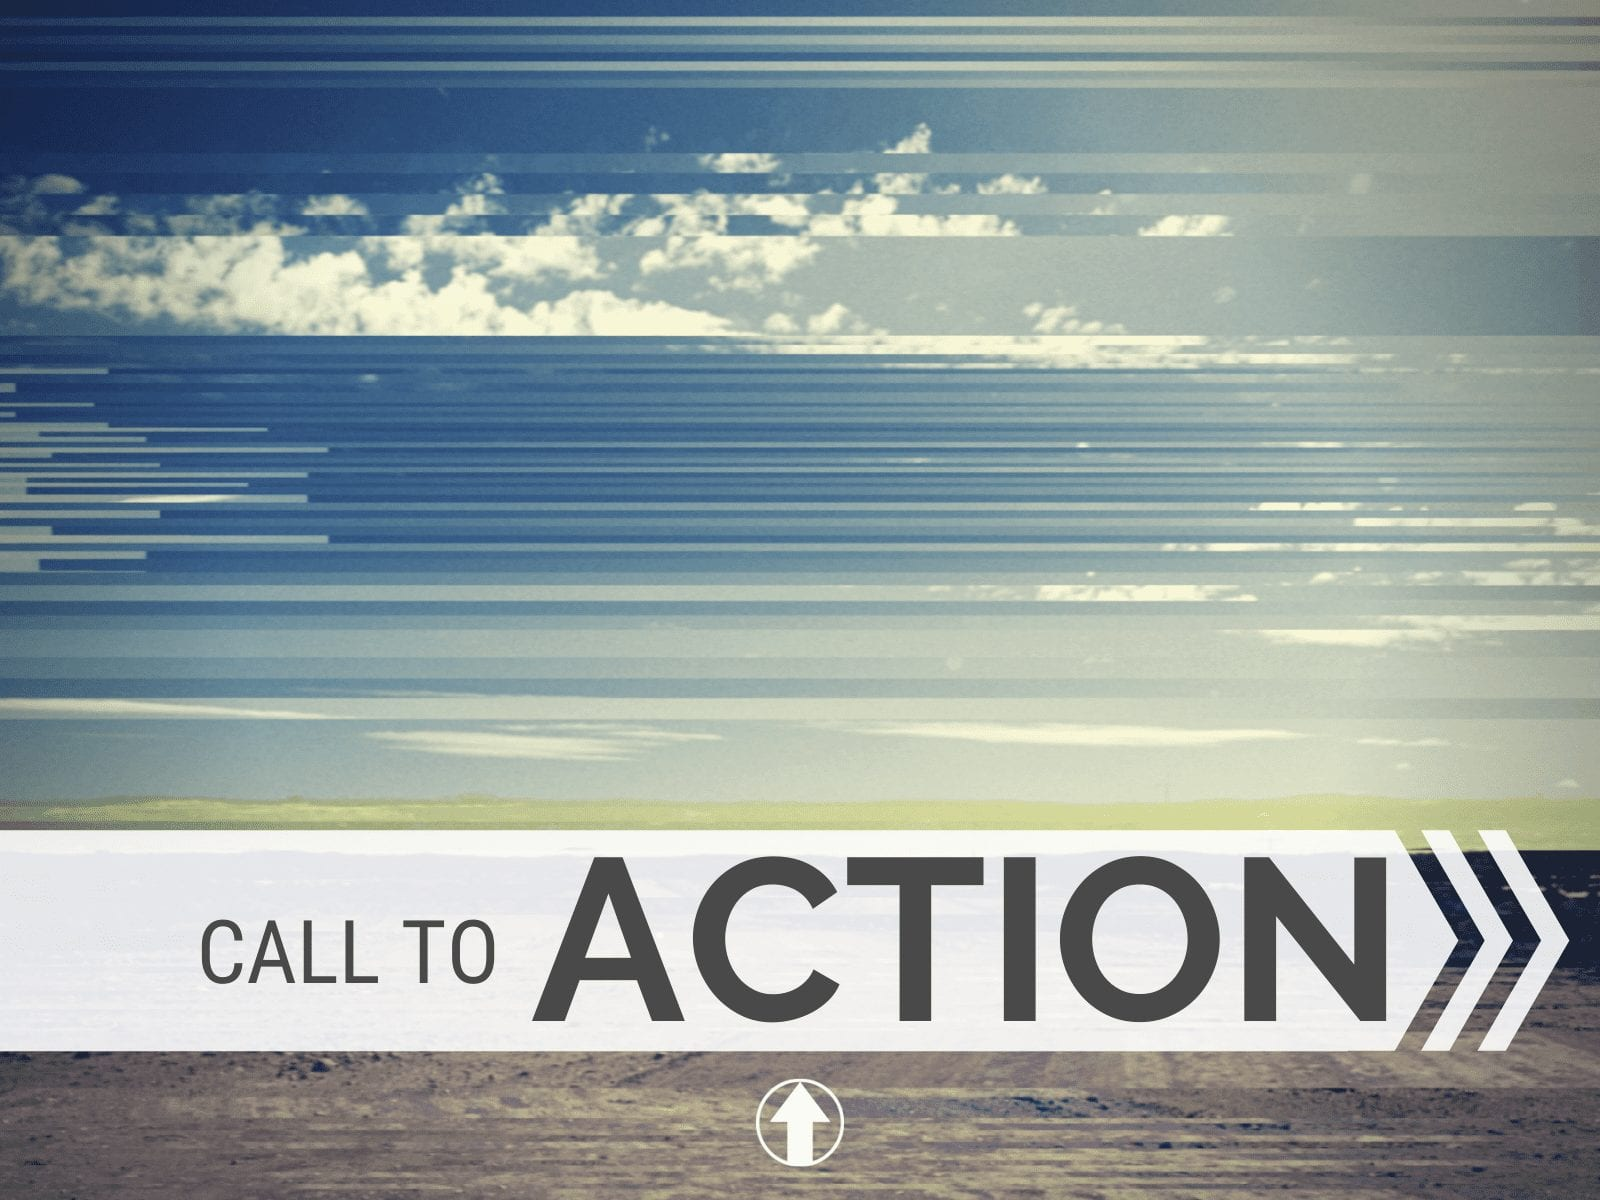 PLAINFIELD: Call to Action – Facing Opposition